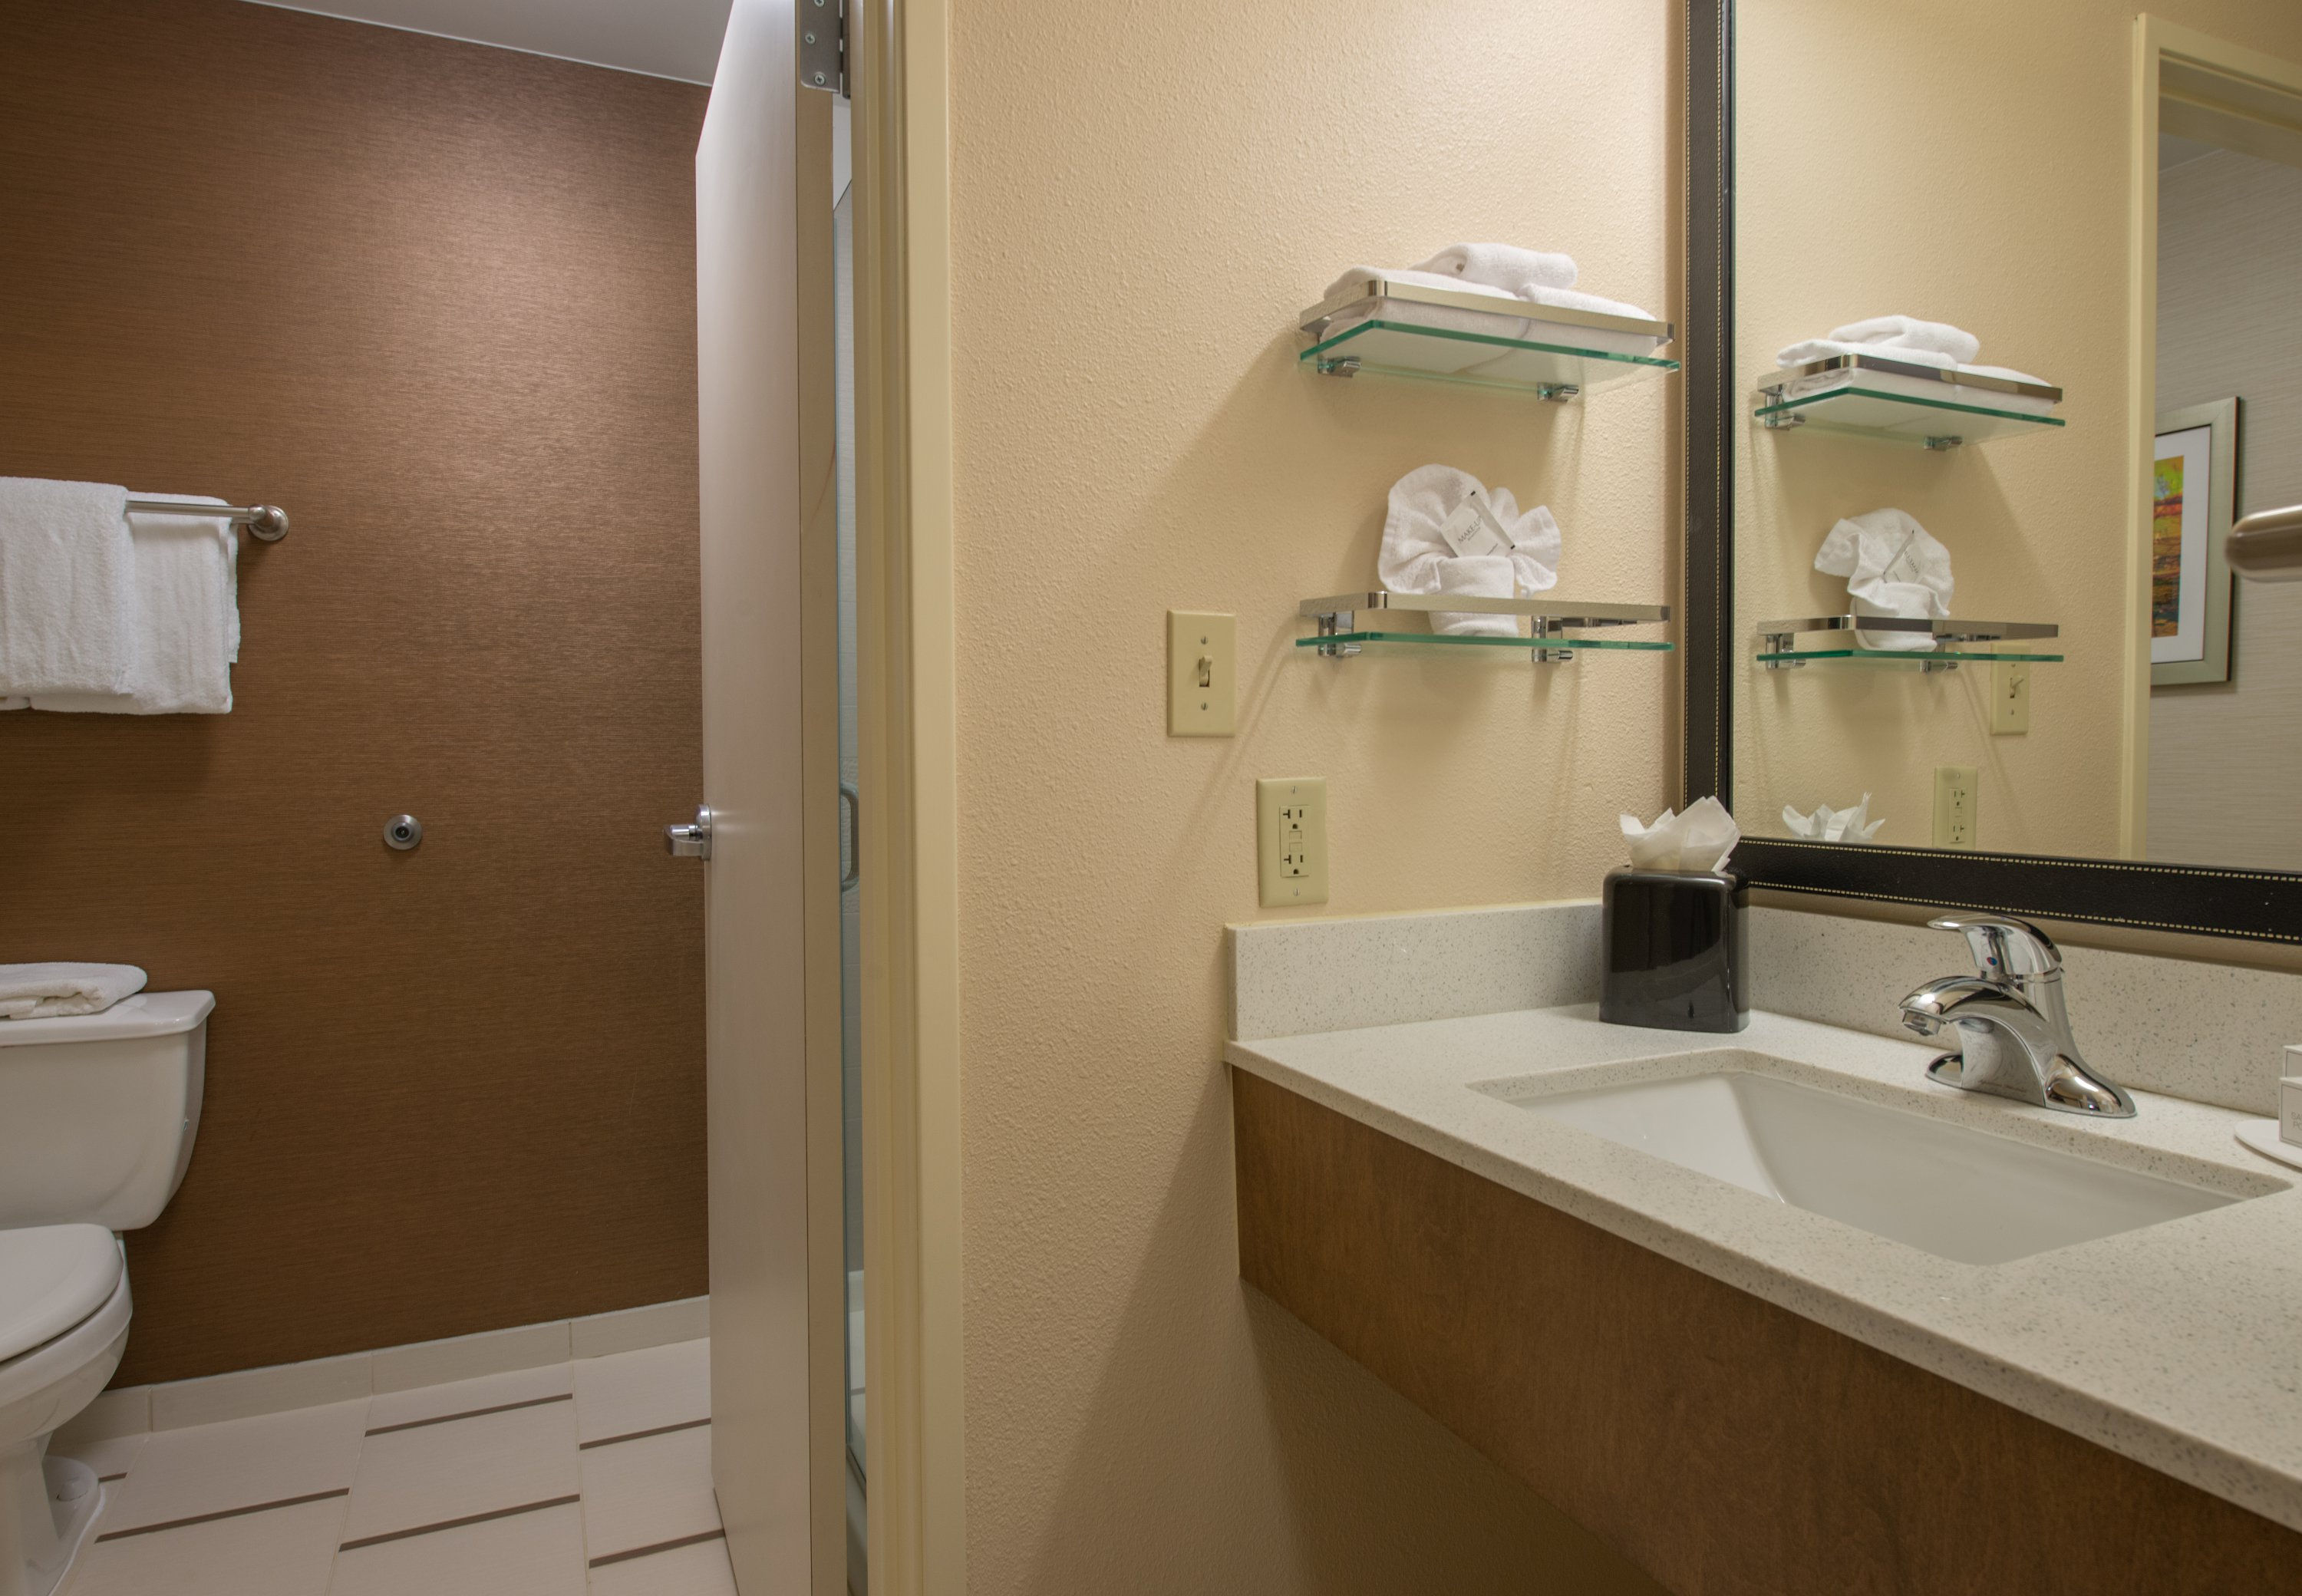 Fairfield Inn & Suites by Marriott Dallas Lewisville image 12